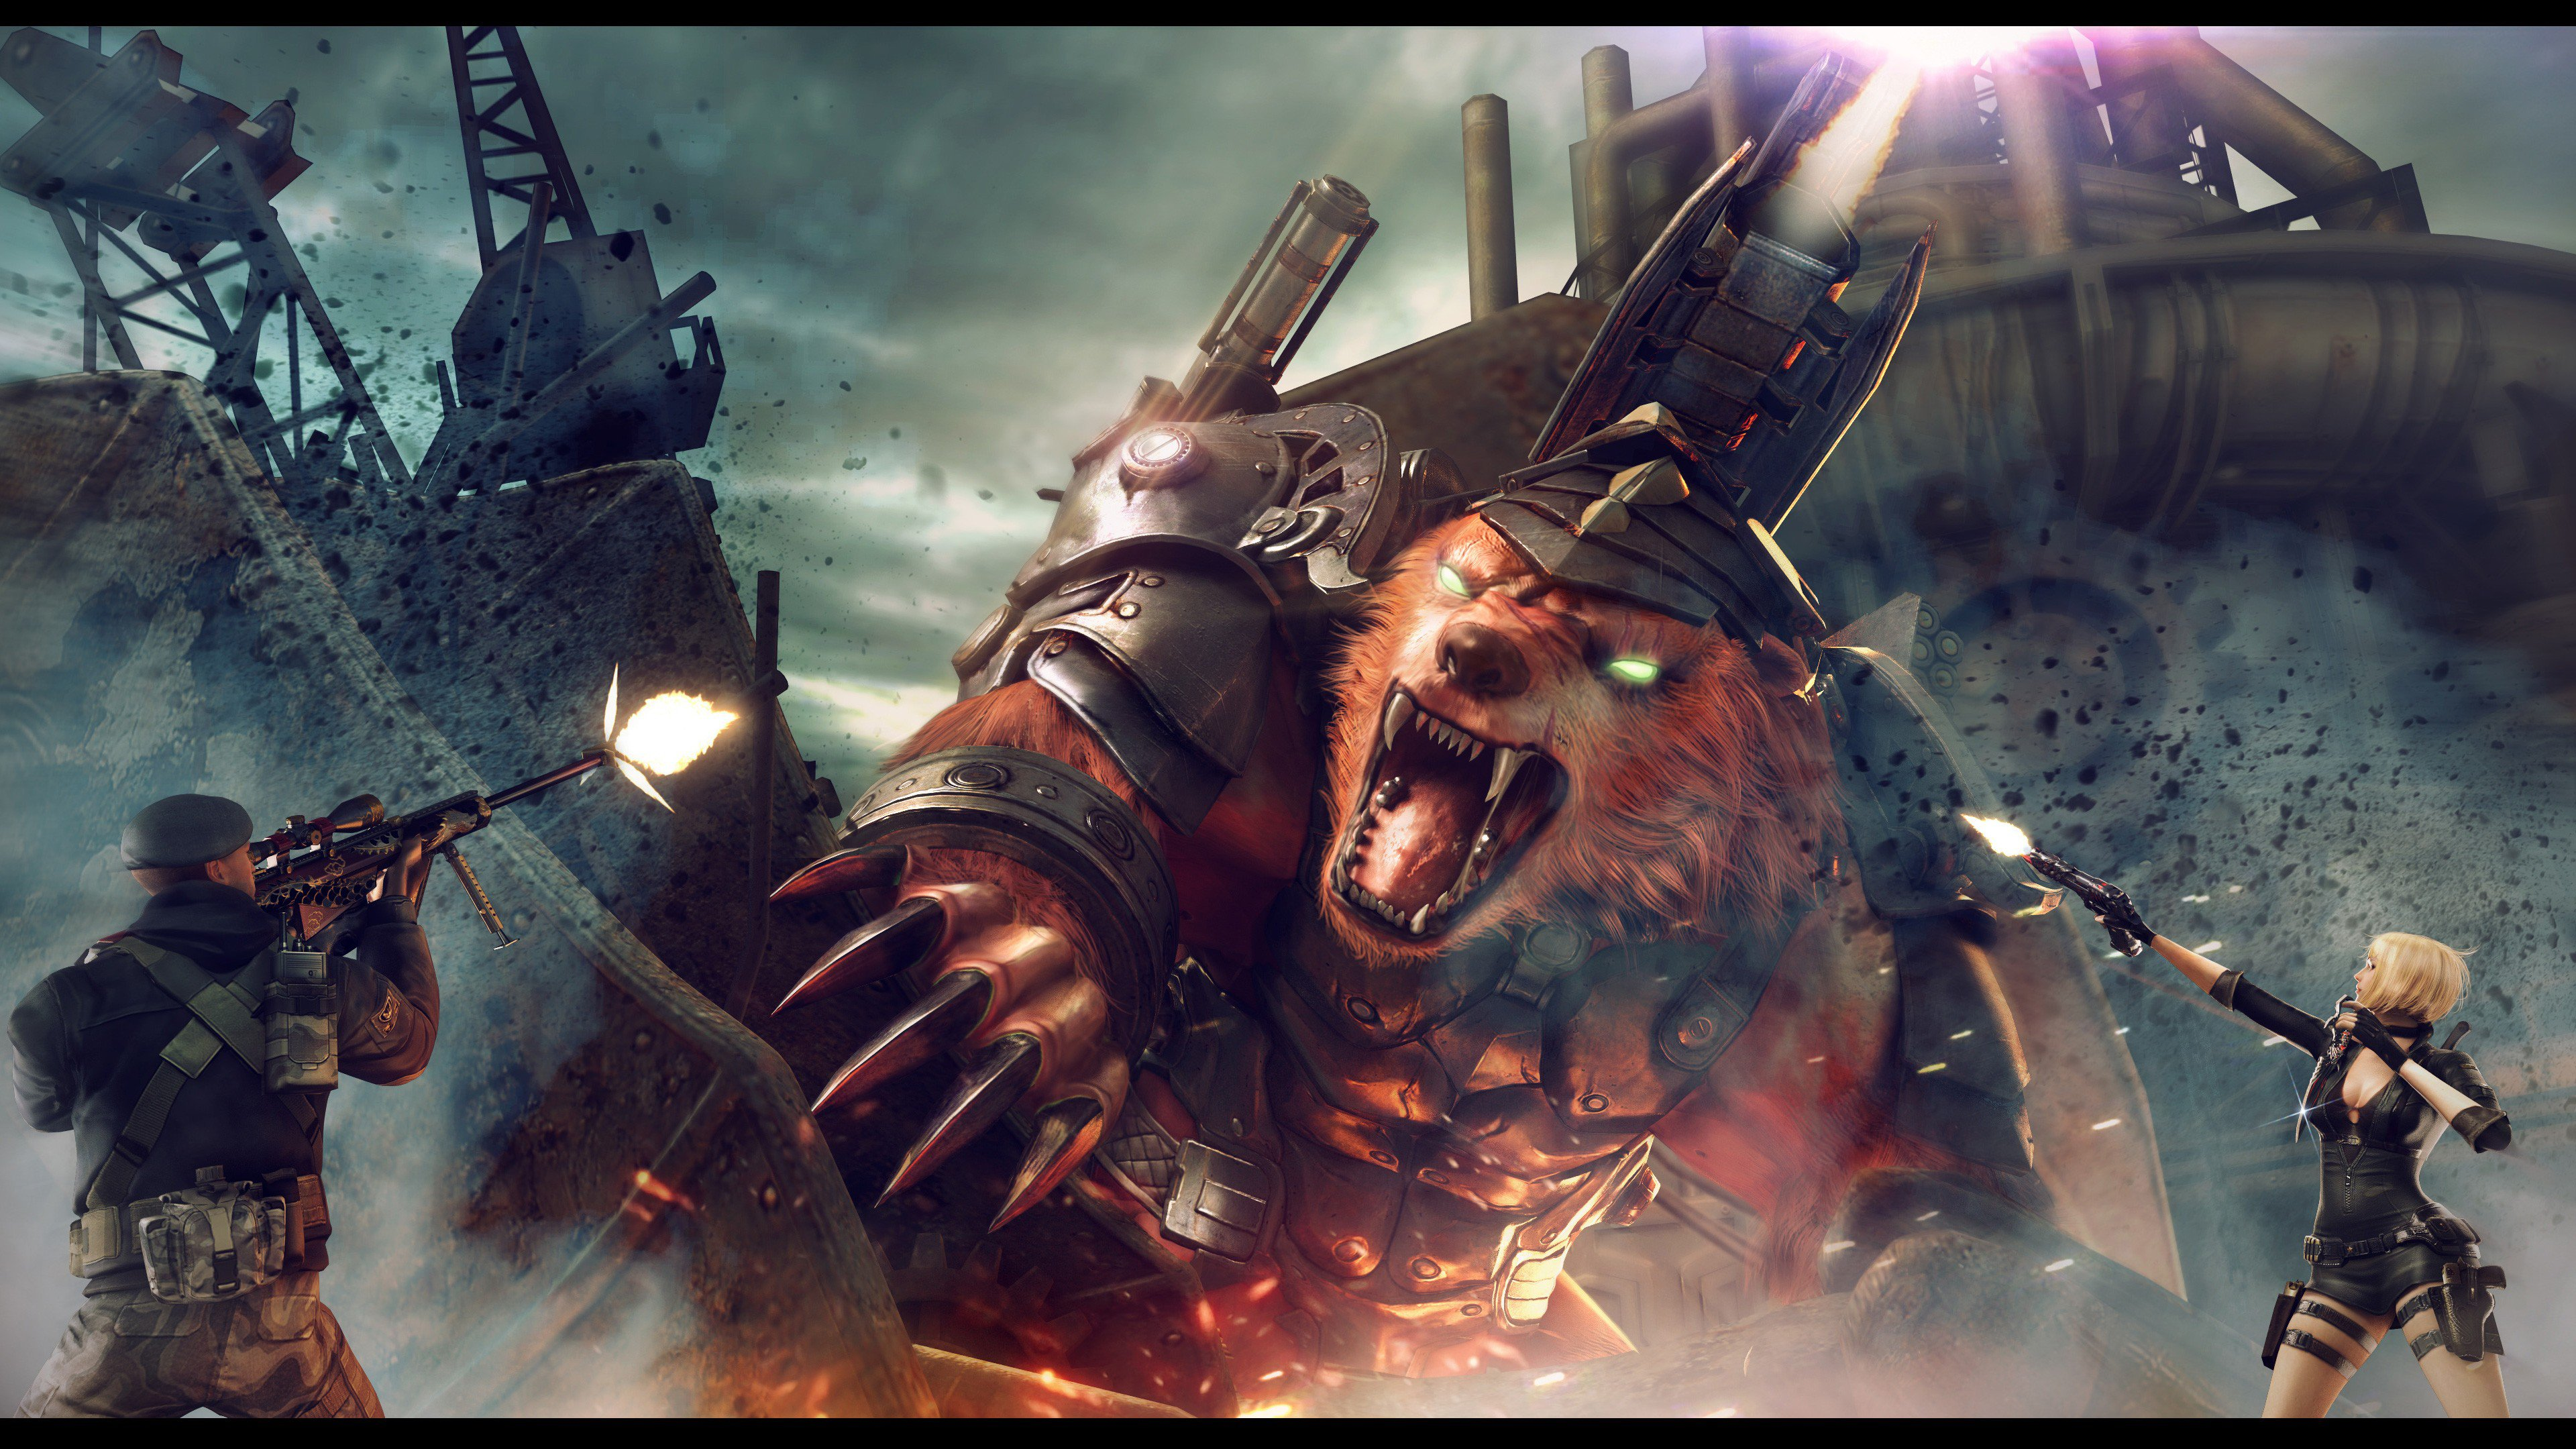 Crossfire china gods hd games 4k wallpapers images - Crossfire wallpaper ...